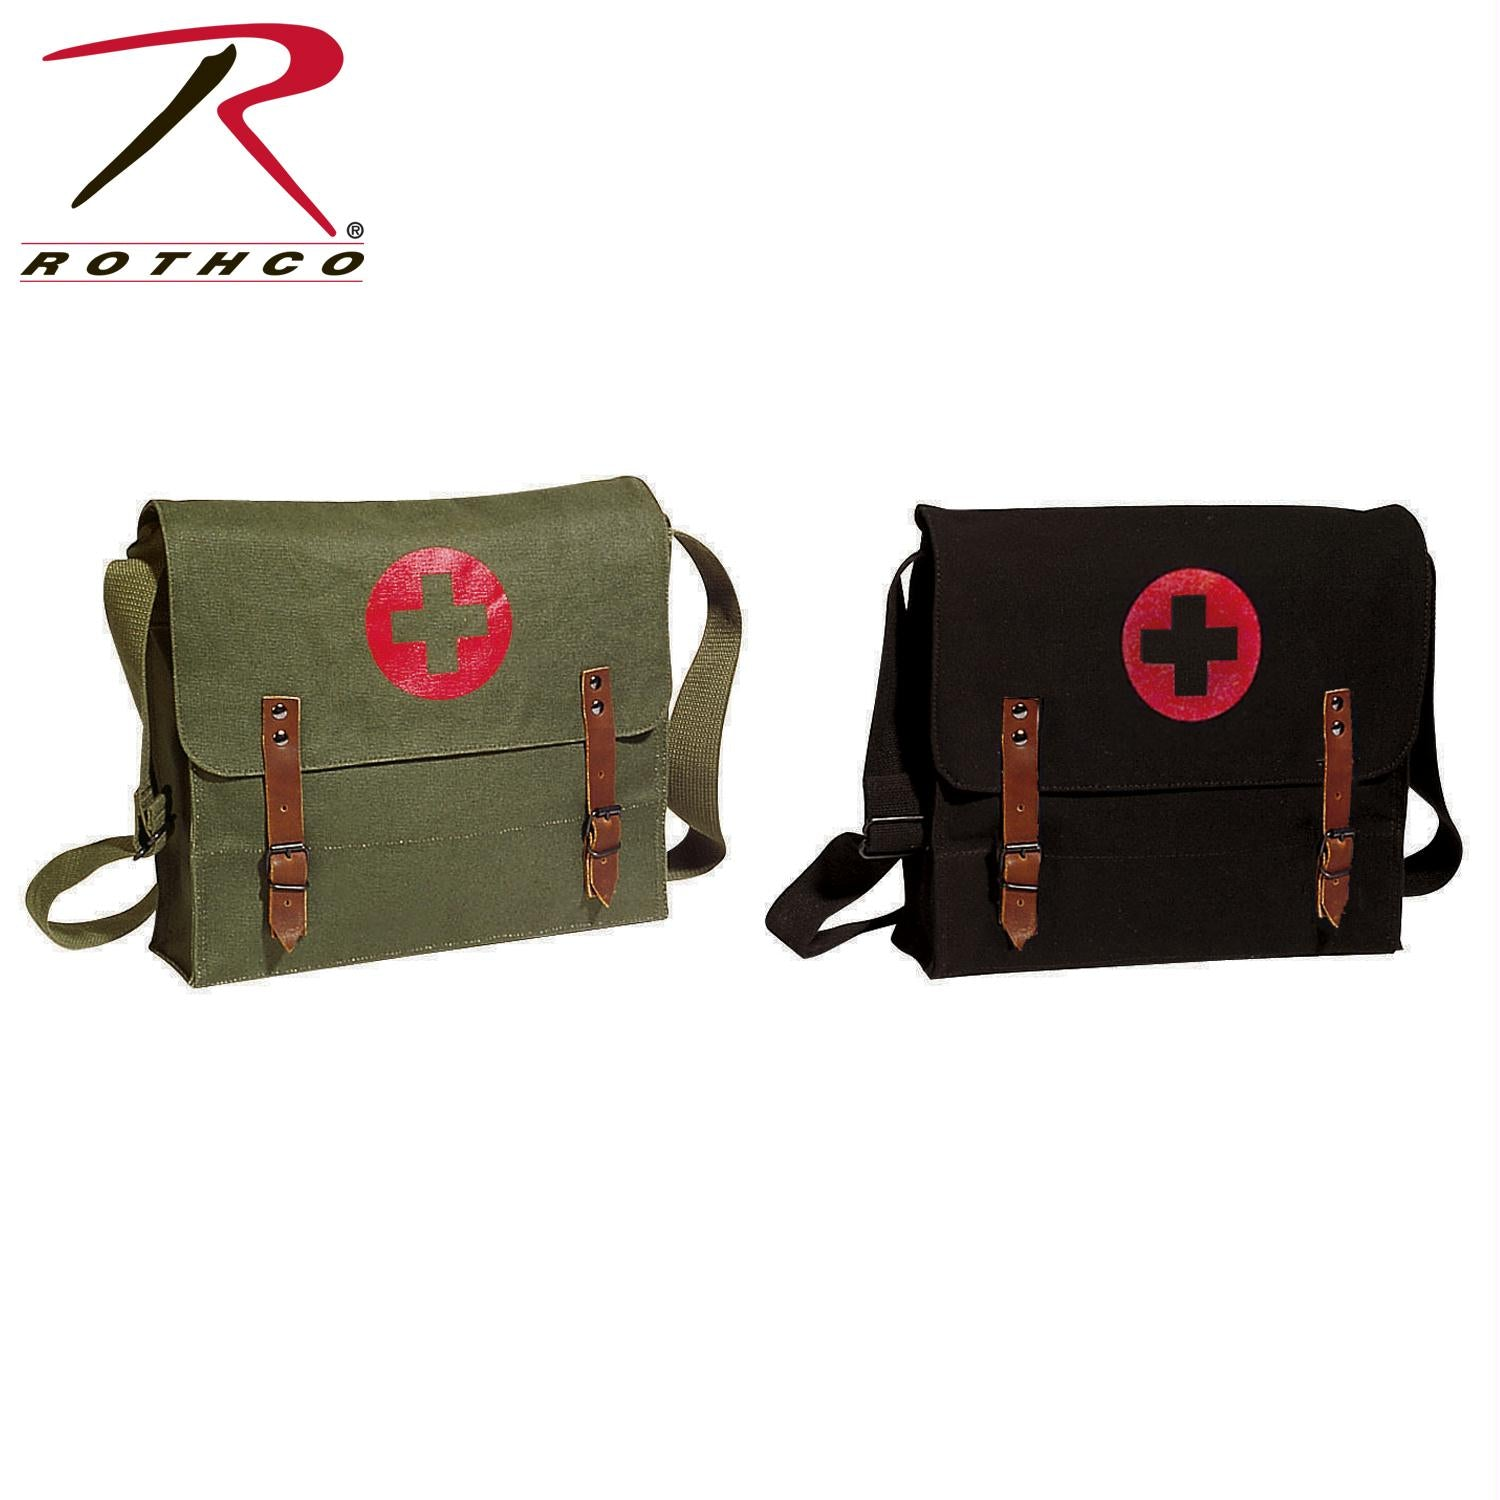 Rothco Canvas Nato Medic Bag - Olive Drab